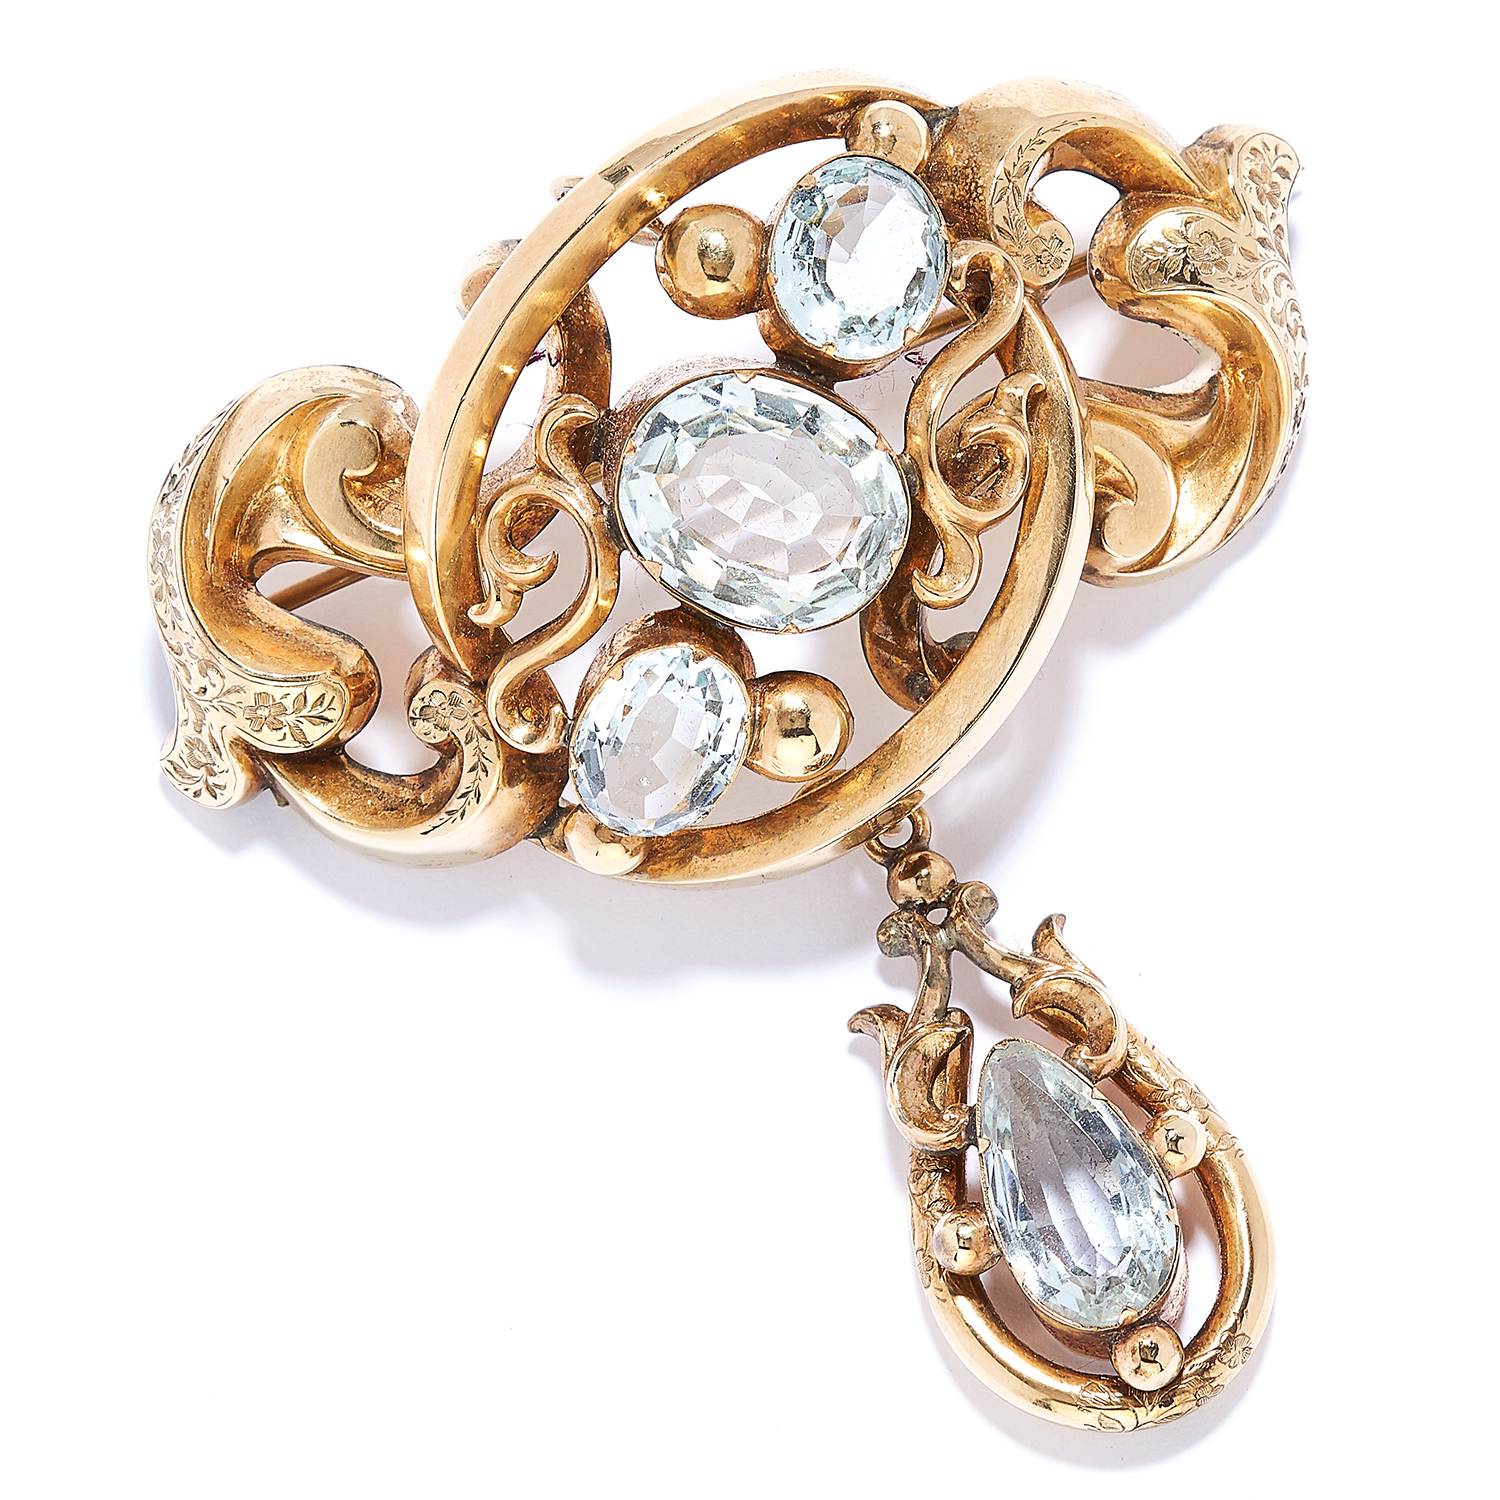 Los 18 - ANTIQUE AQUAMARINE BROOCH / PENDANT, 19TH CENTURY in high carat yellow gold, set with three oval cut